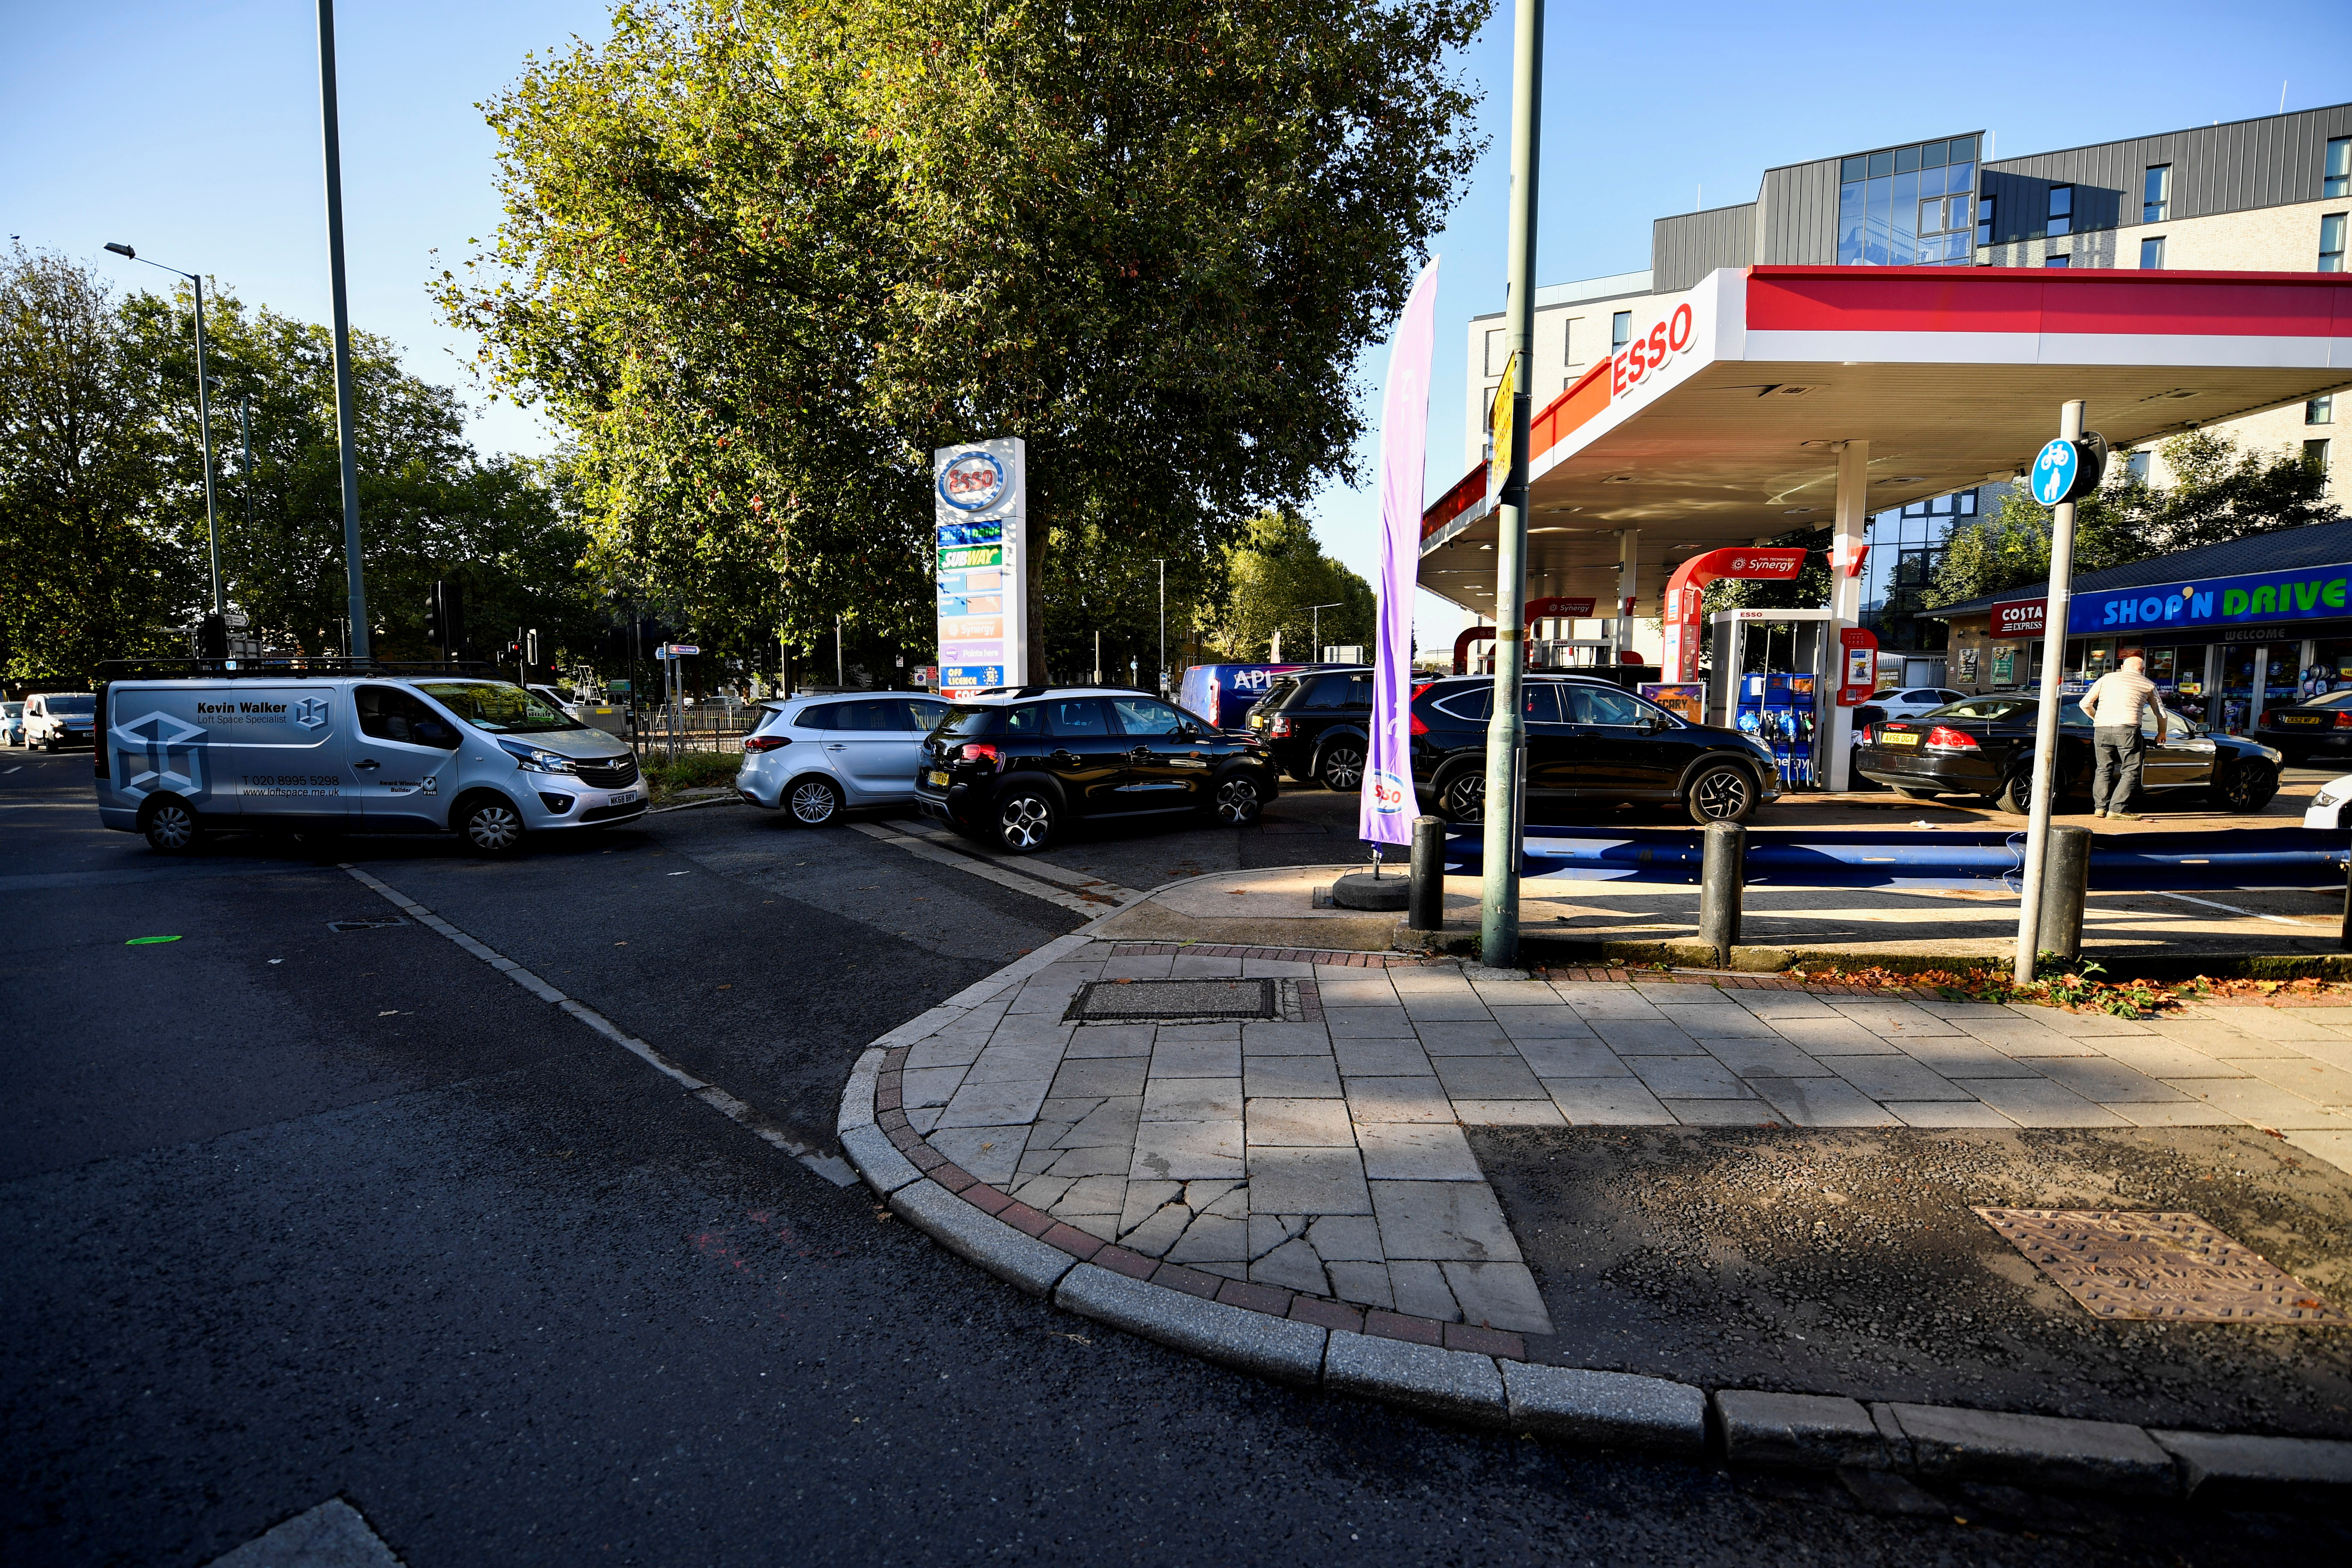 Drivers queue for petrol as panic buying continues in London, Britain,September 29, 2021. REUTERS/Beresford Hodge/File Photo